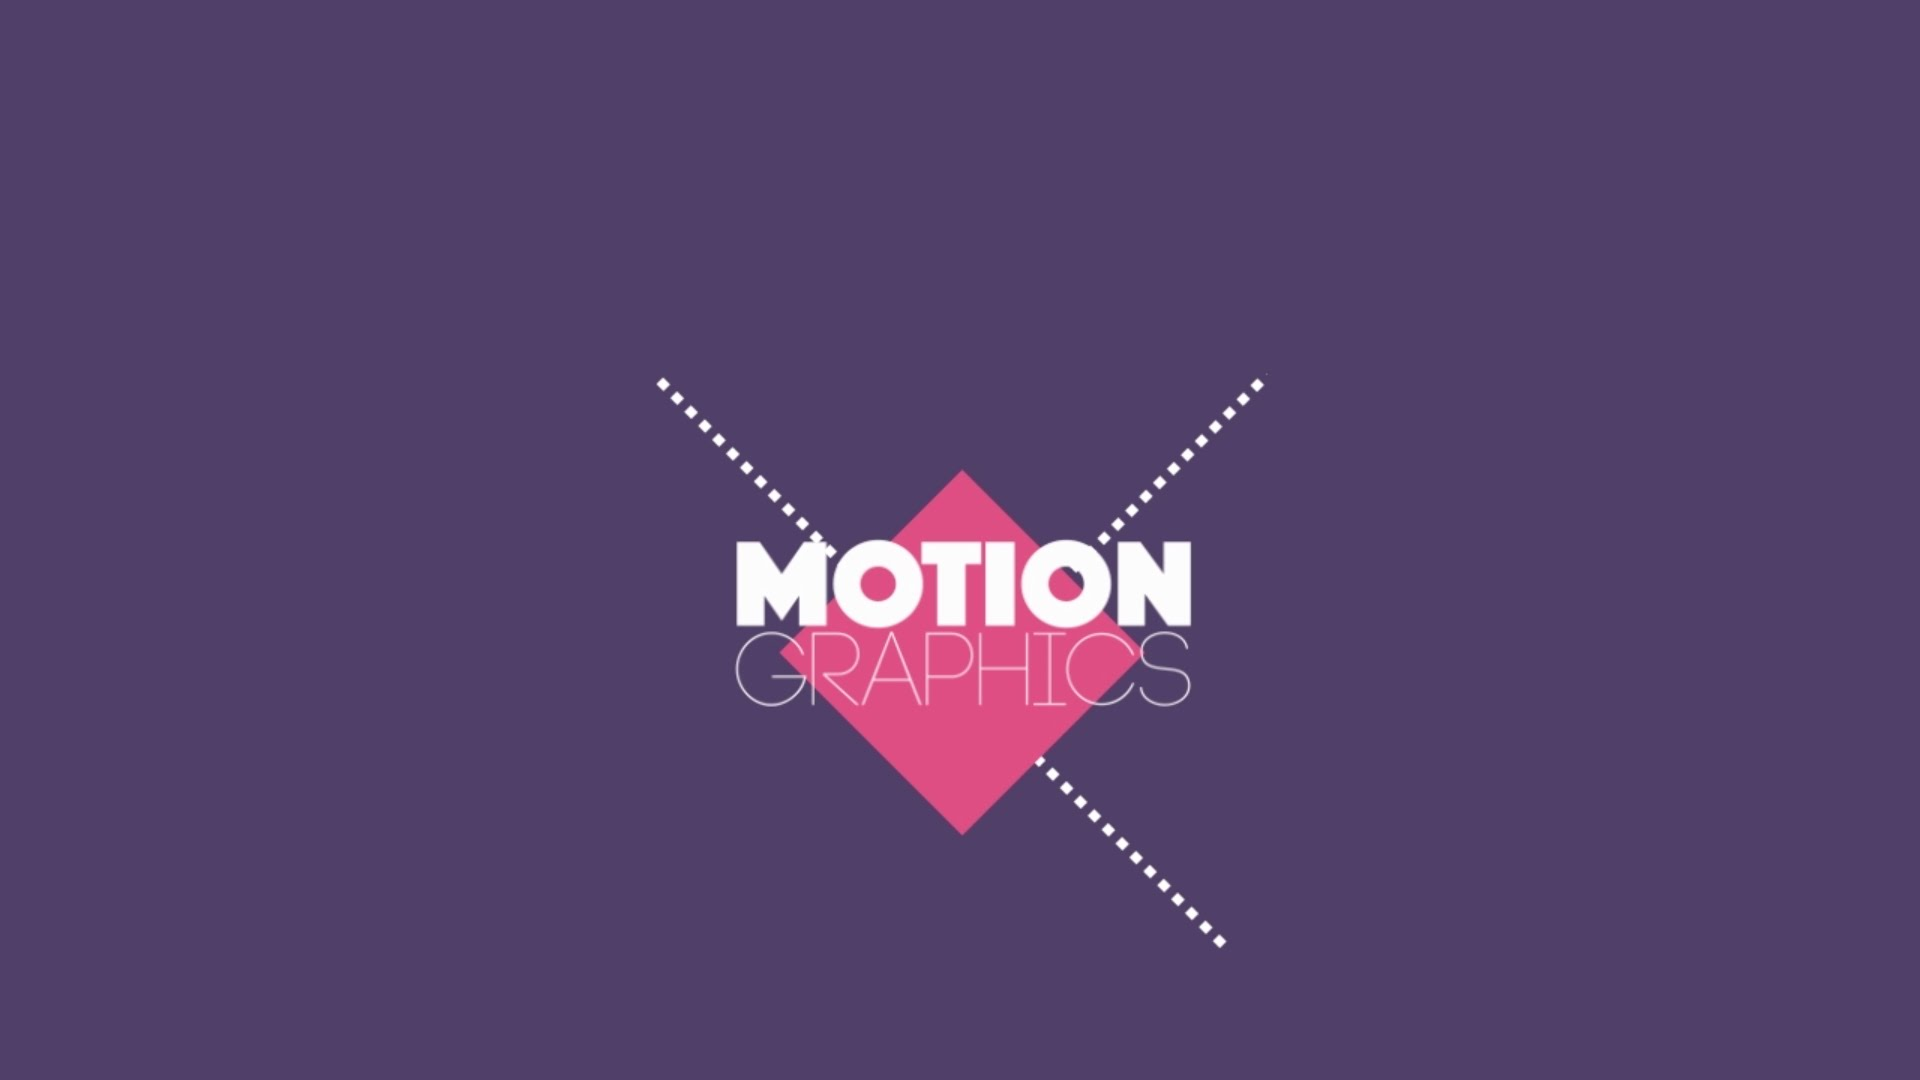 Motion Graphics and VFX Video can help you present the ideas